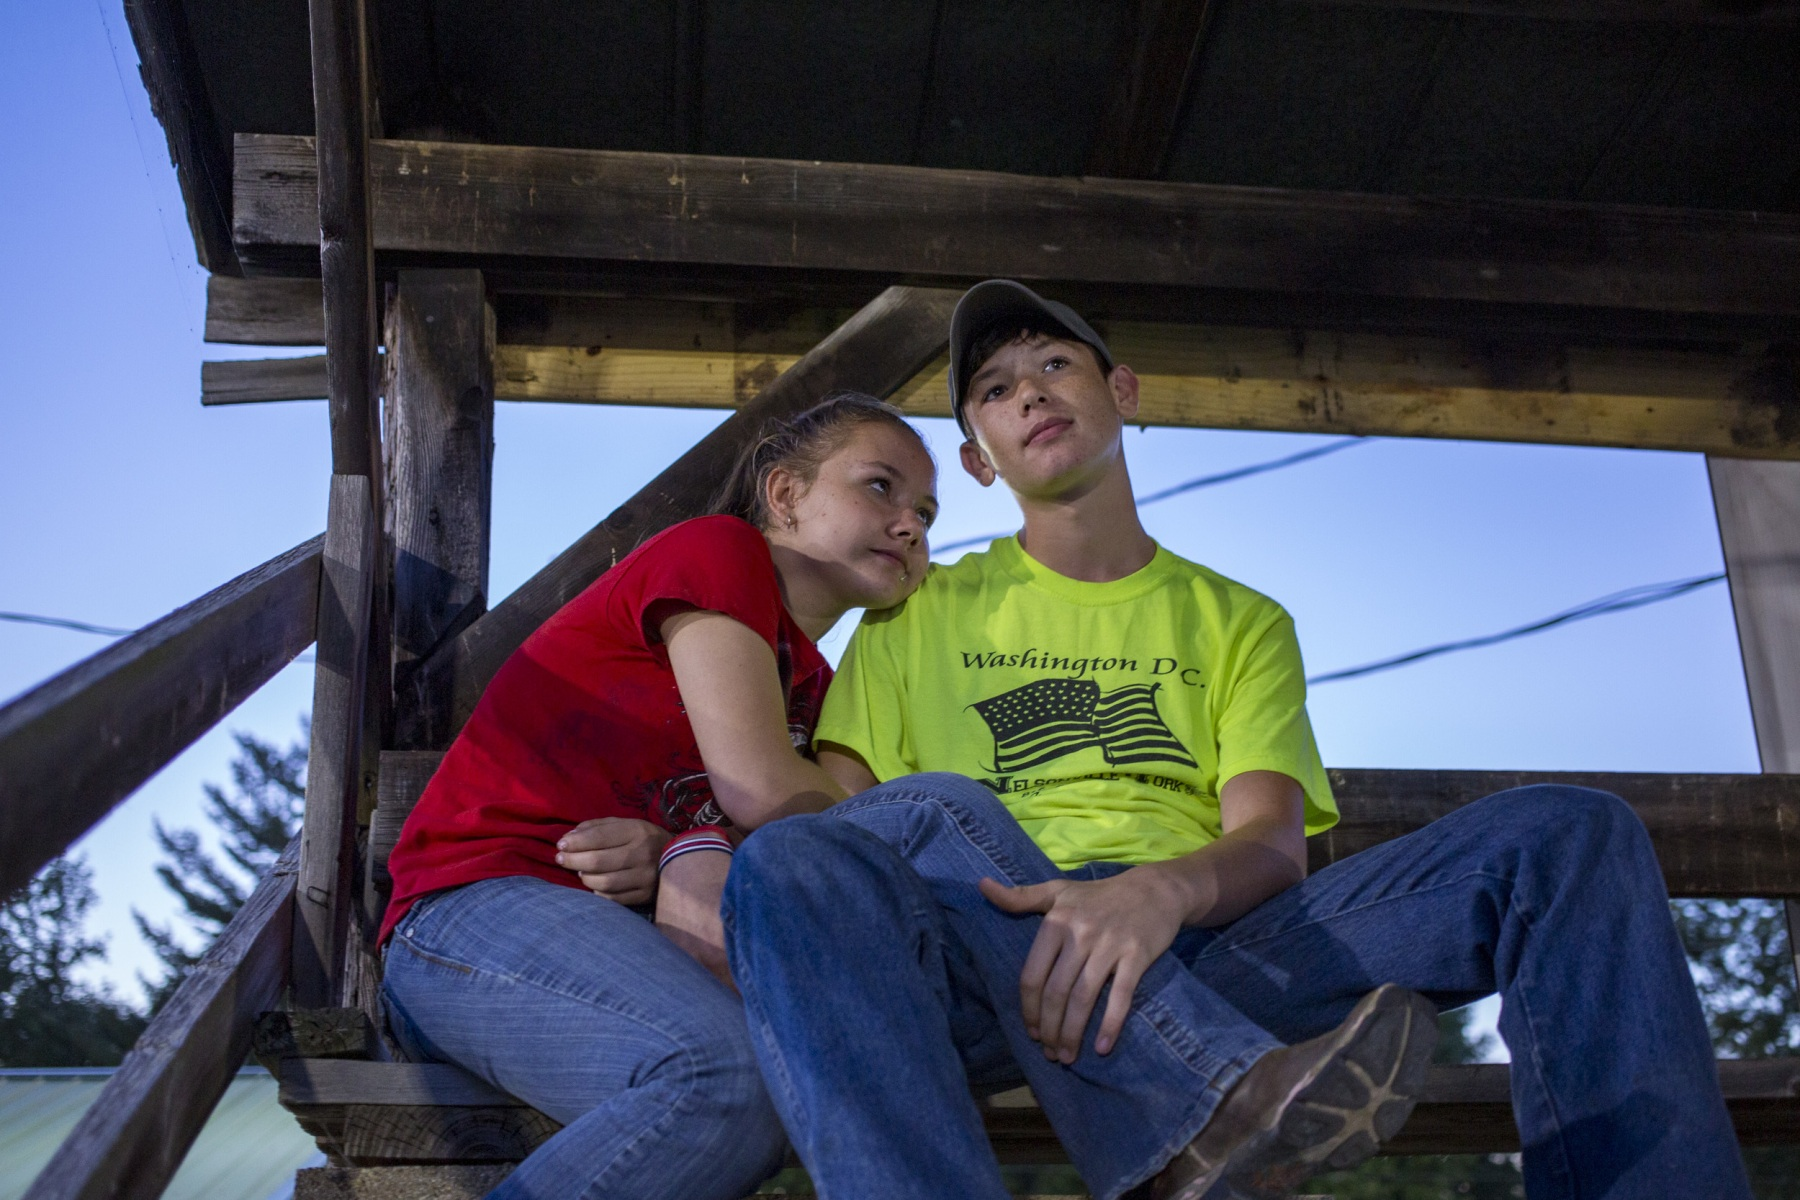 Desmond Norris, 16, and Ariel Rutter, 13, of Athens, Ohio sit on the empty bleachers of the horse arena at the Albany Independent Fair in Albany, Ohio on Saturday, September 7, 2019. The couple came to the fair for a date and found some quiet time while the crowded tractor and truck pull event occurred on the pulling track. (Photo by Lauren Santucci)